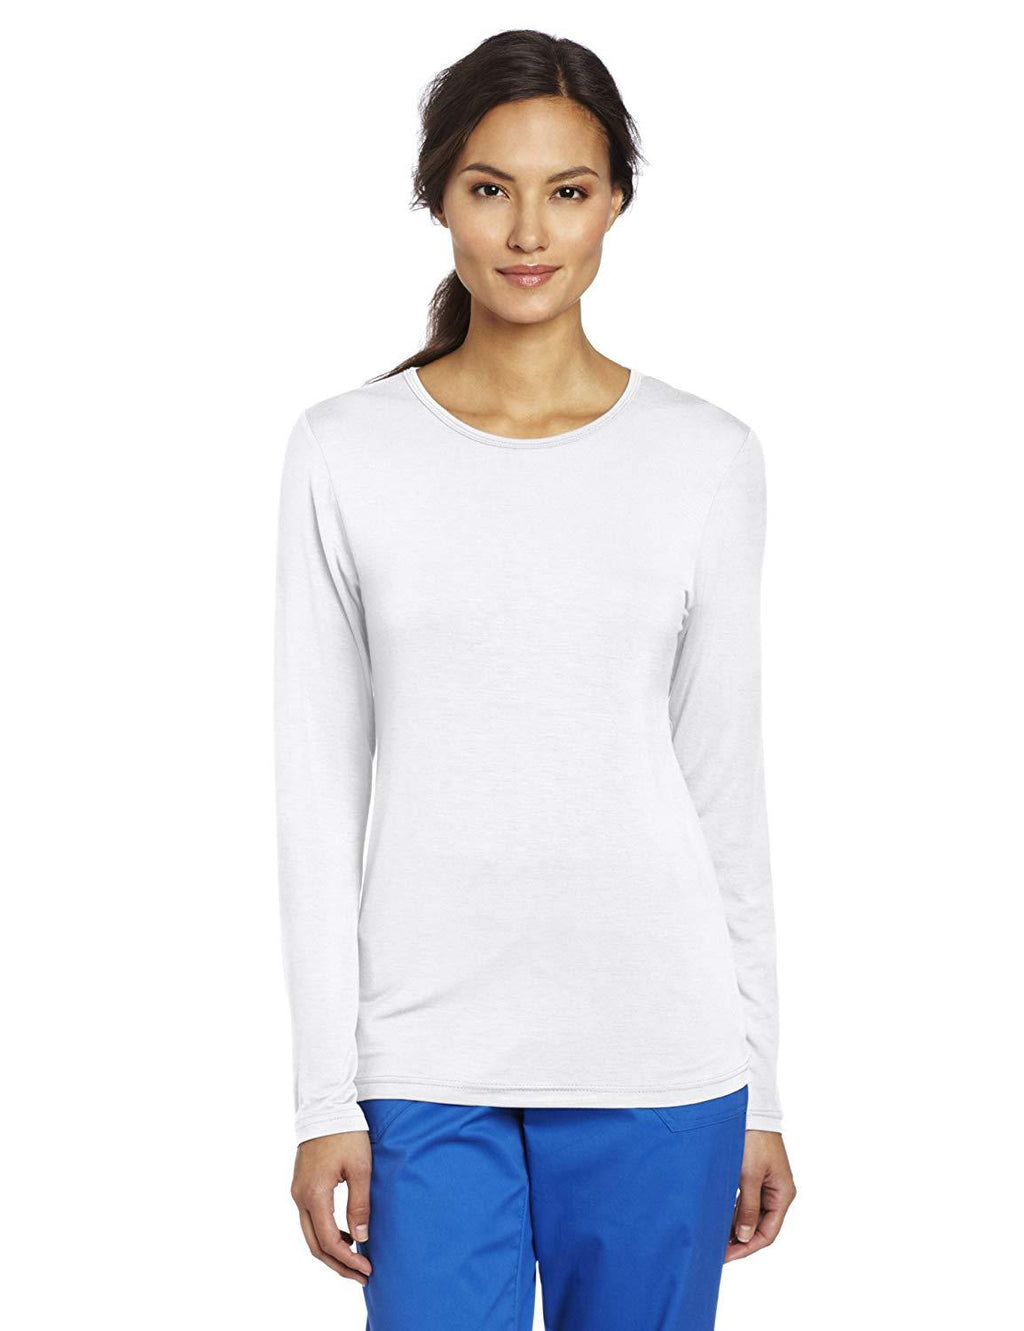 wonderwink-women's-scrubs-silky-long-sleeve-t-shirt